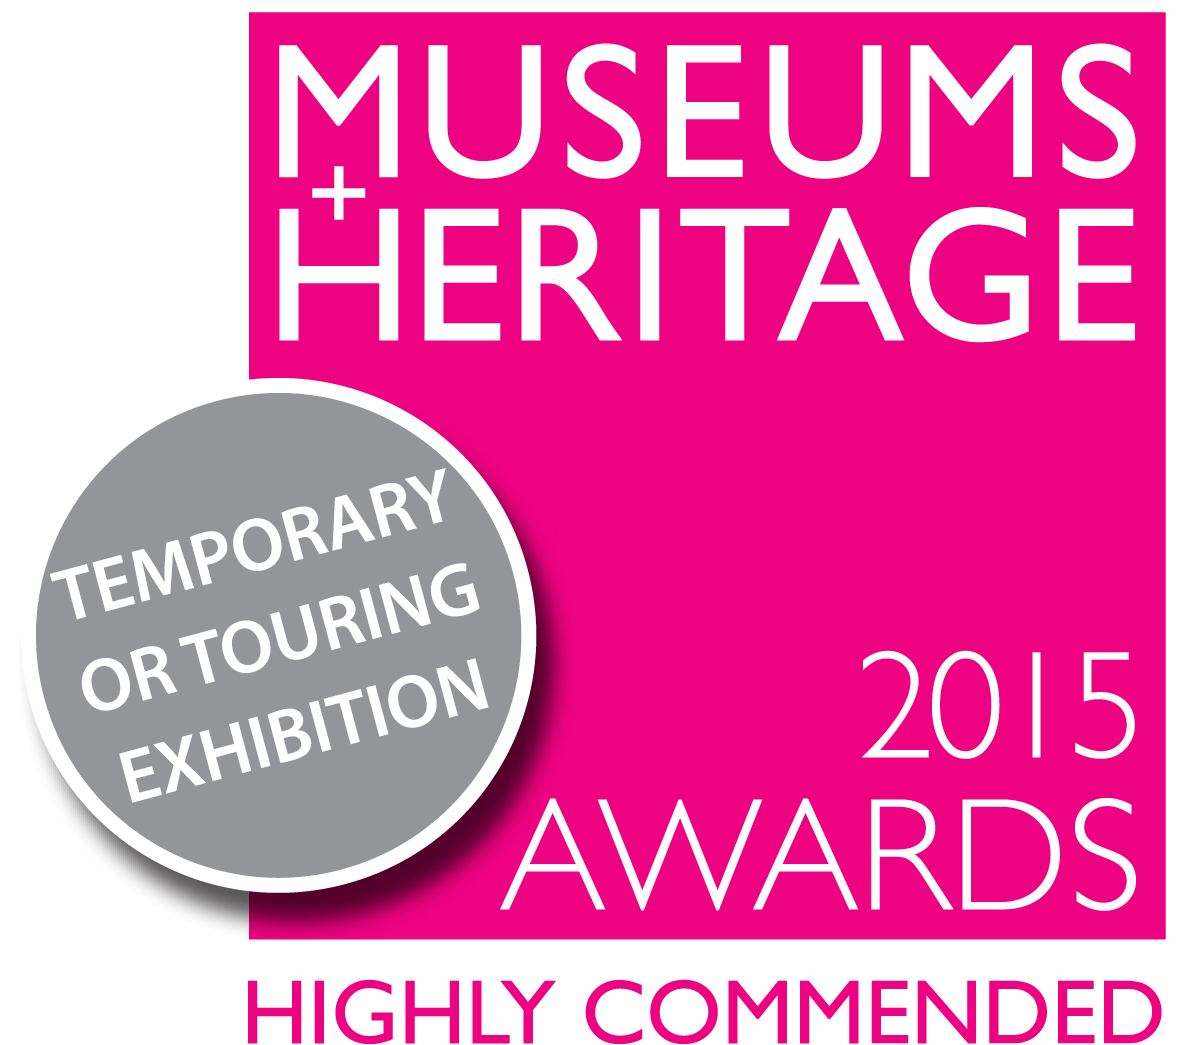 The Museum and Heritage Awards 2015. Highly Commended for Best Temporary Exhibition.